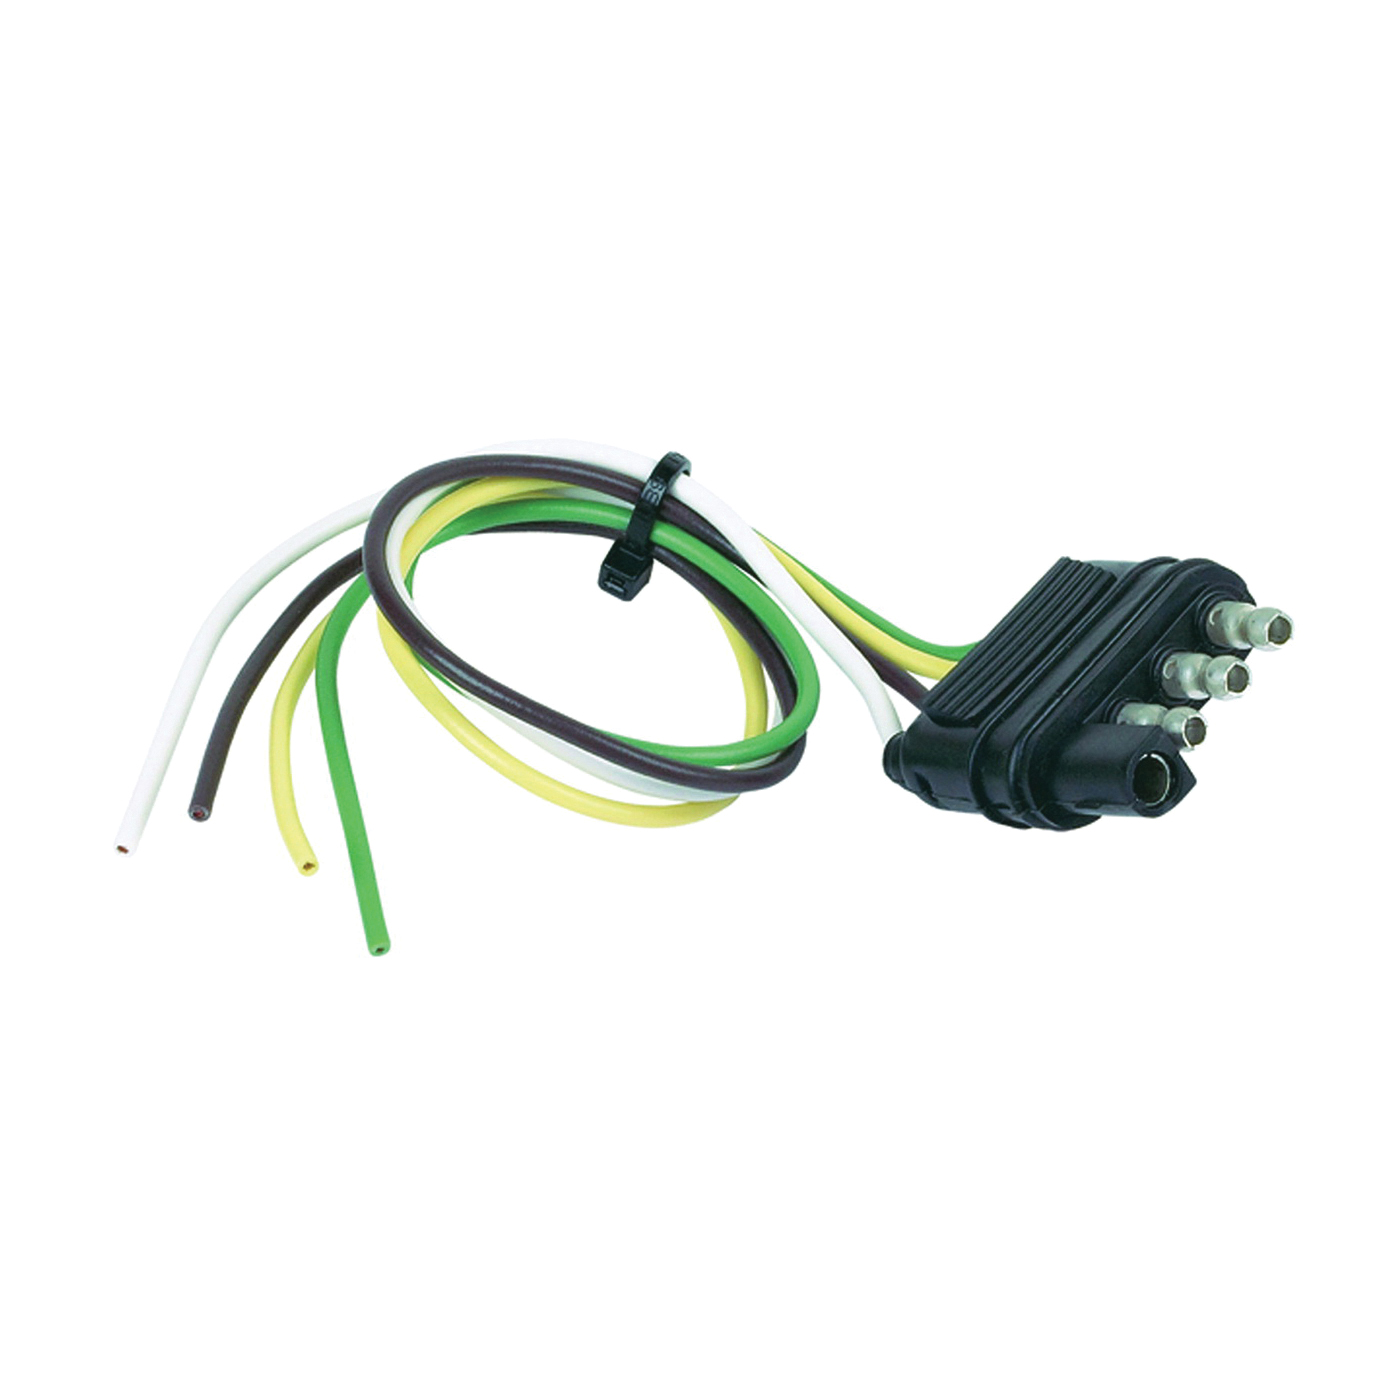 Picture of HOPKINS 48115 Trailer Wiring Connector, 6/12 V